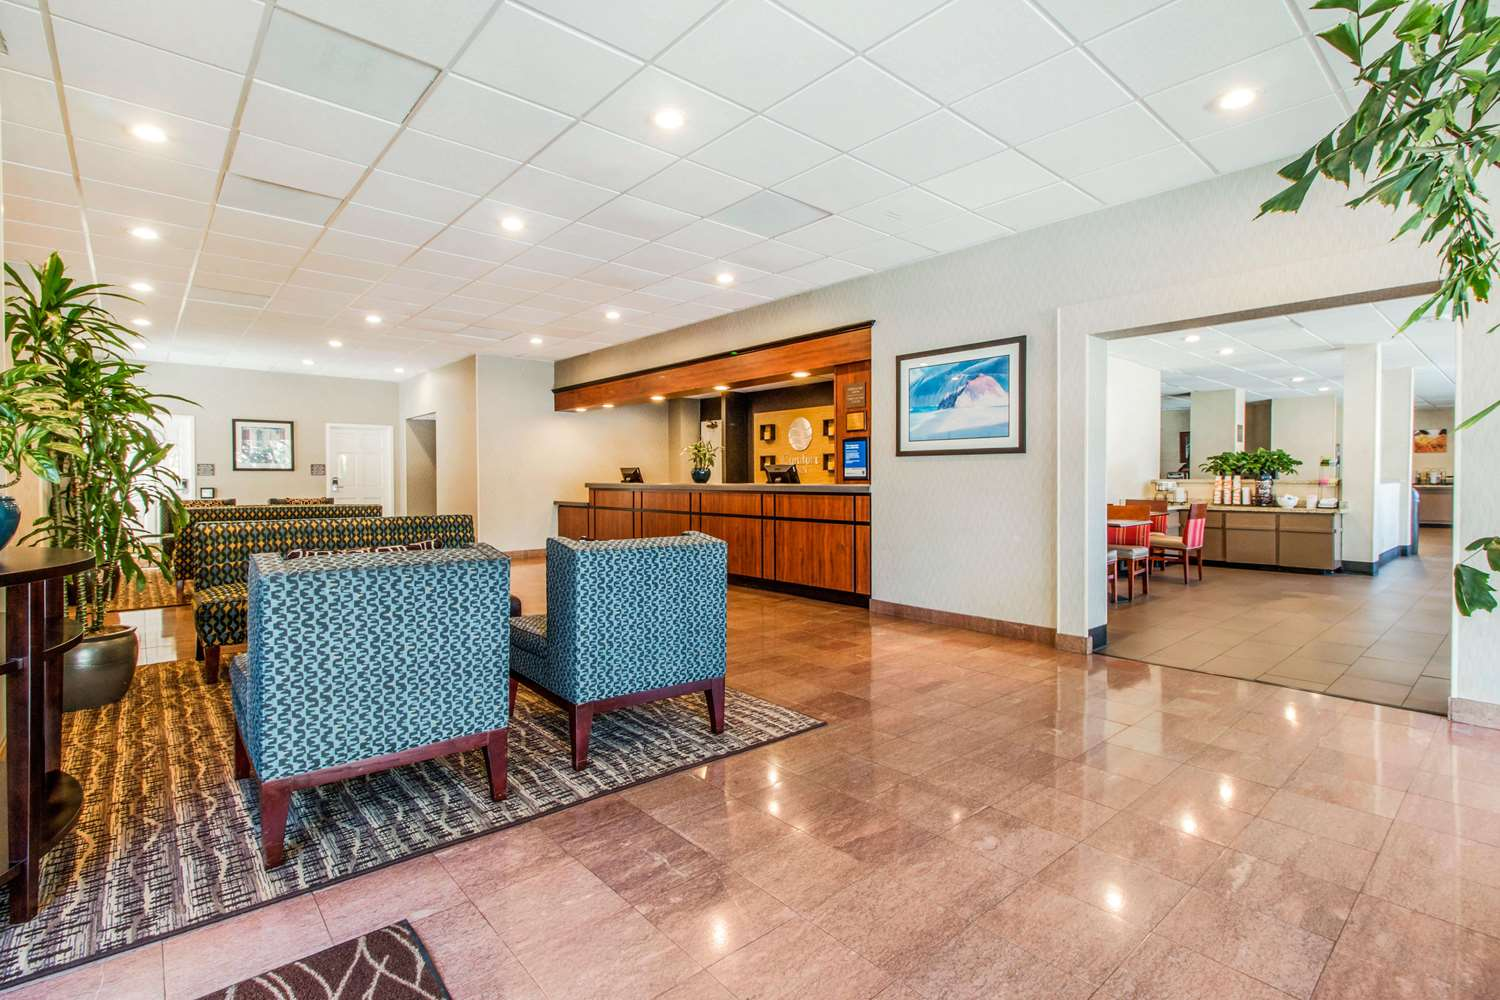 Comfort Inn By The Bay San Francisco Ca See Discounts